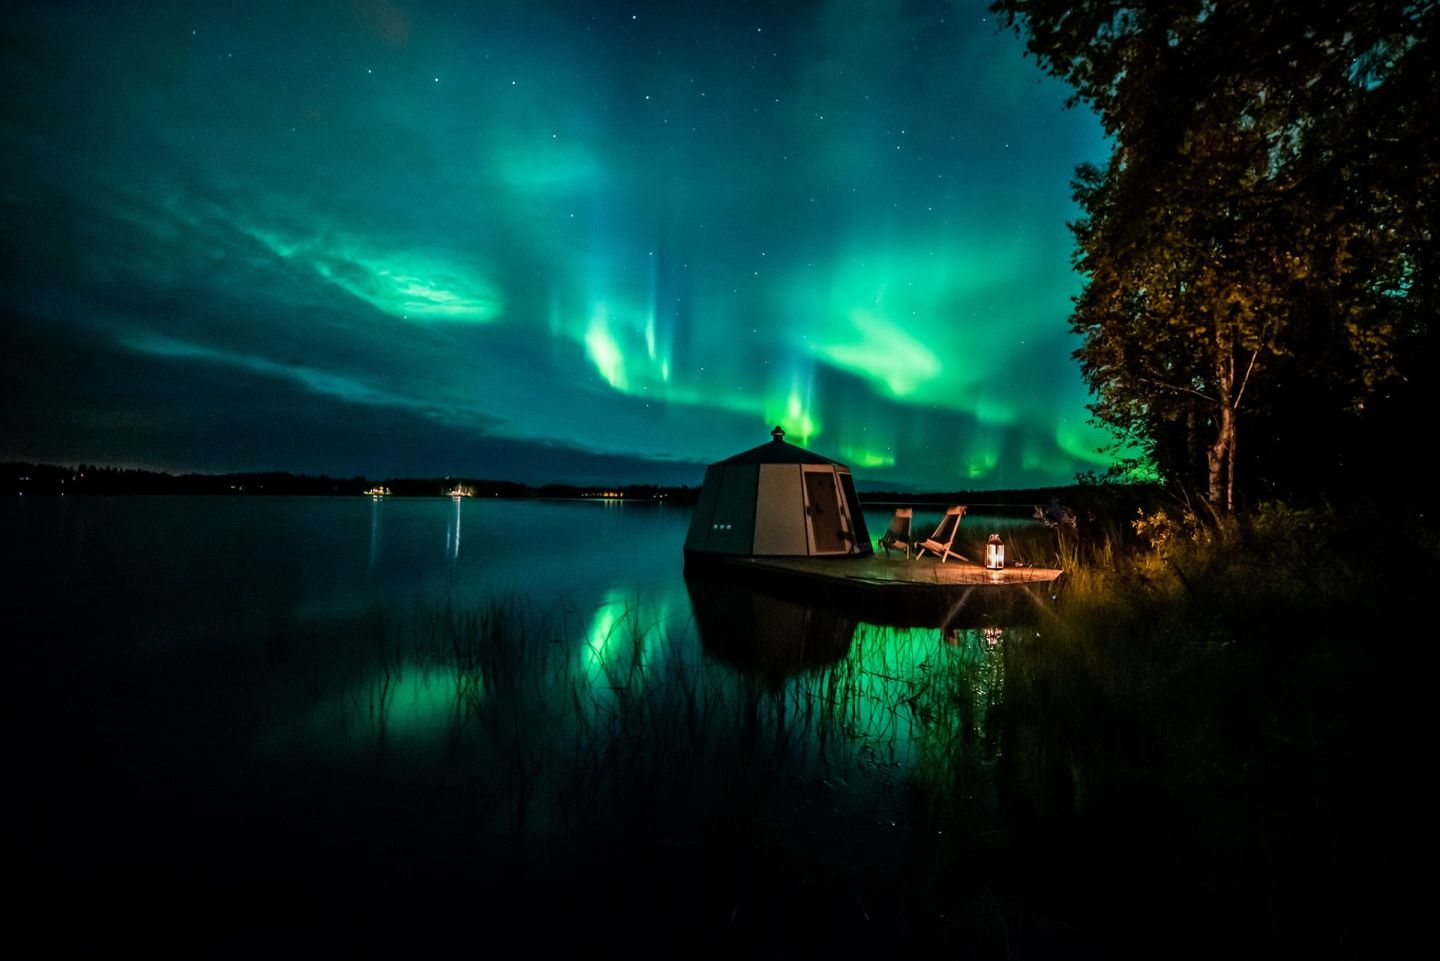 The auroras over a floating igloo in Ranua, Finland